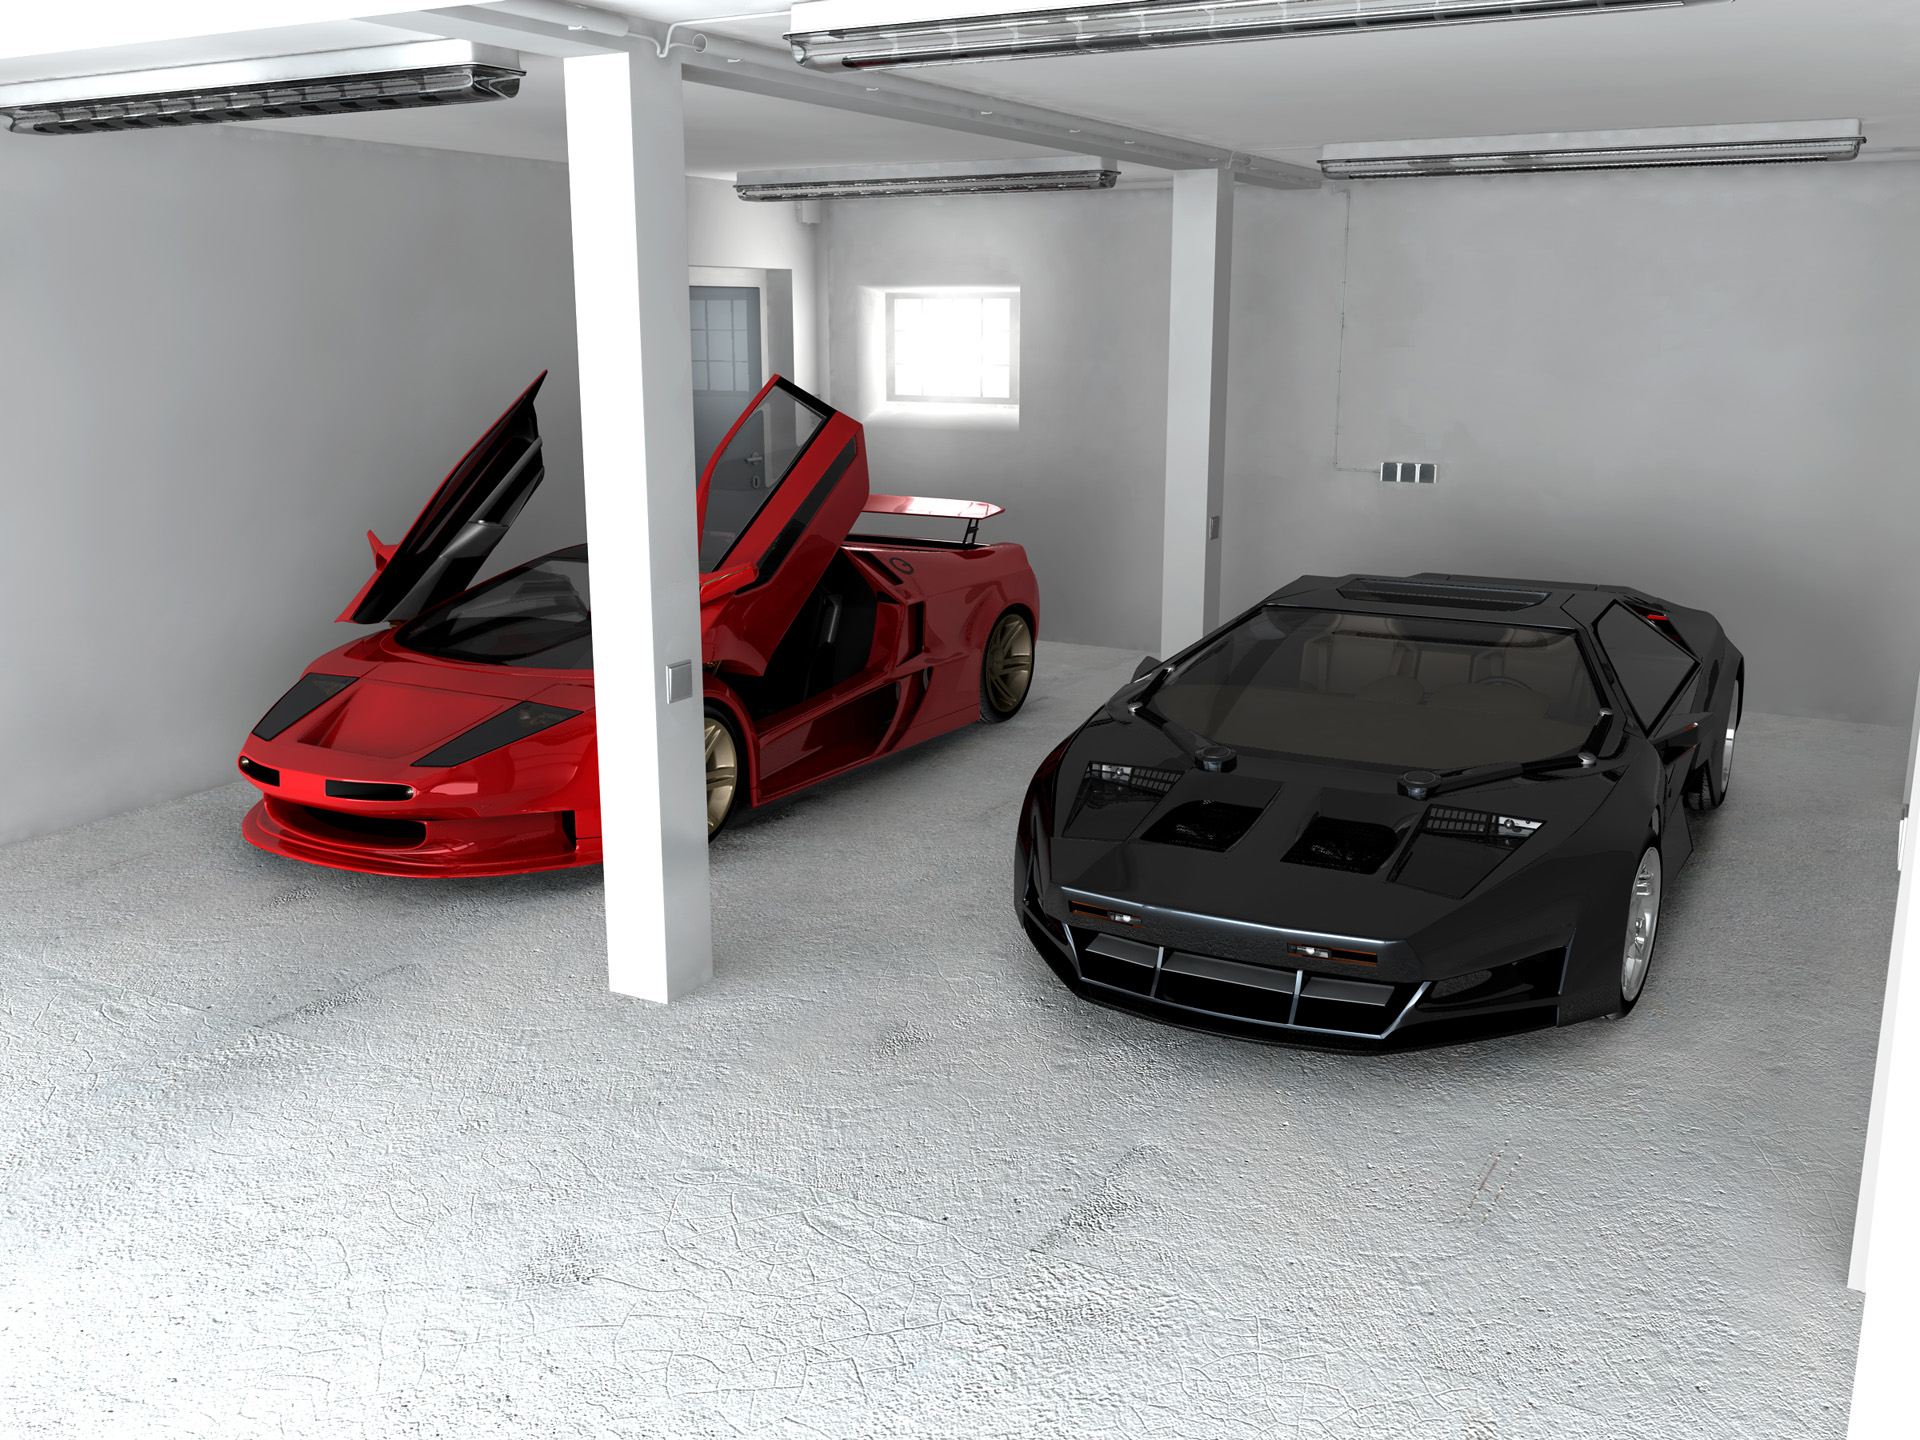 Best Garage Colors Design For Rustic Home Living: Awesome Red And Black Sport Cars Cool Garage Colors Design